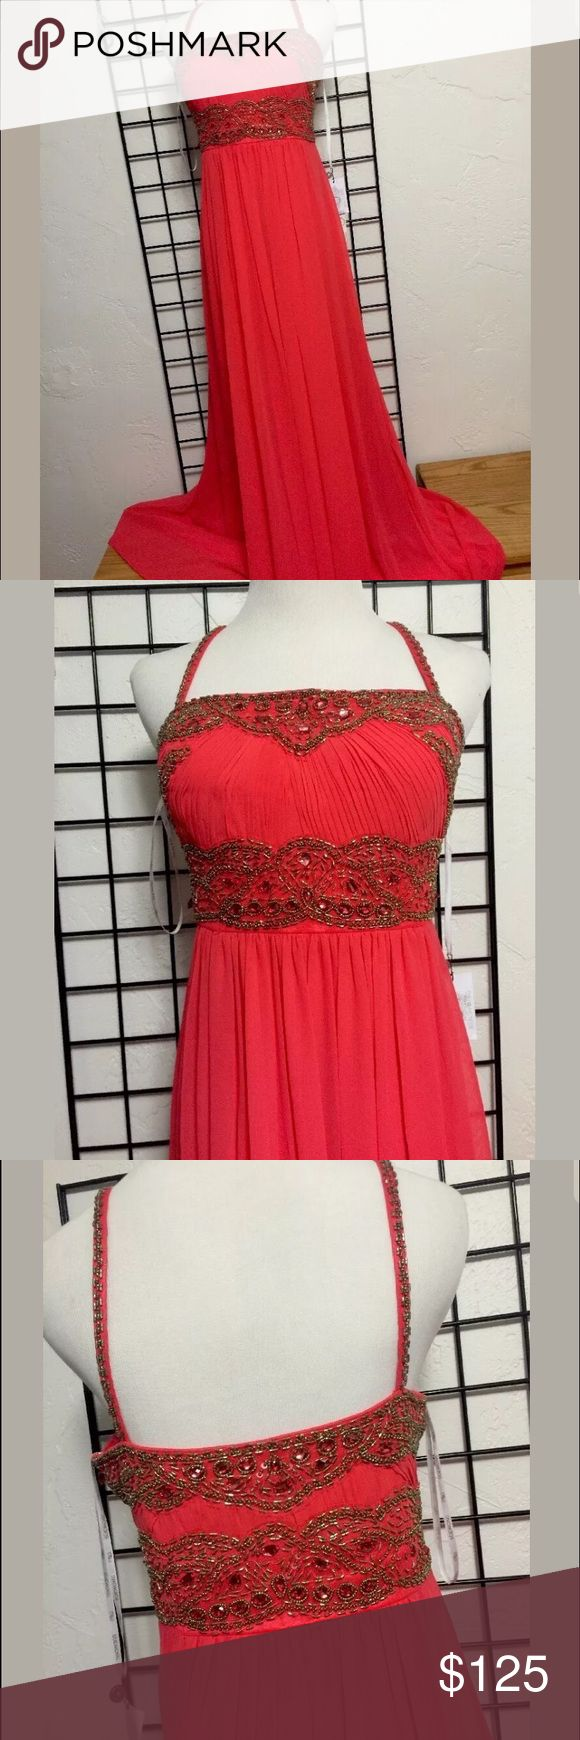 Sue Wong Nocturne Beaded Flame Gown Sz 12 dress Beautiful Sue Wong Nocturne Beaded Gown Size 12 Orange / Red Flame color  Sheer polyester  Fully lined  Beaded bodice  Hidden side zipper  NWT Sue Wong Dresses